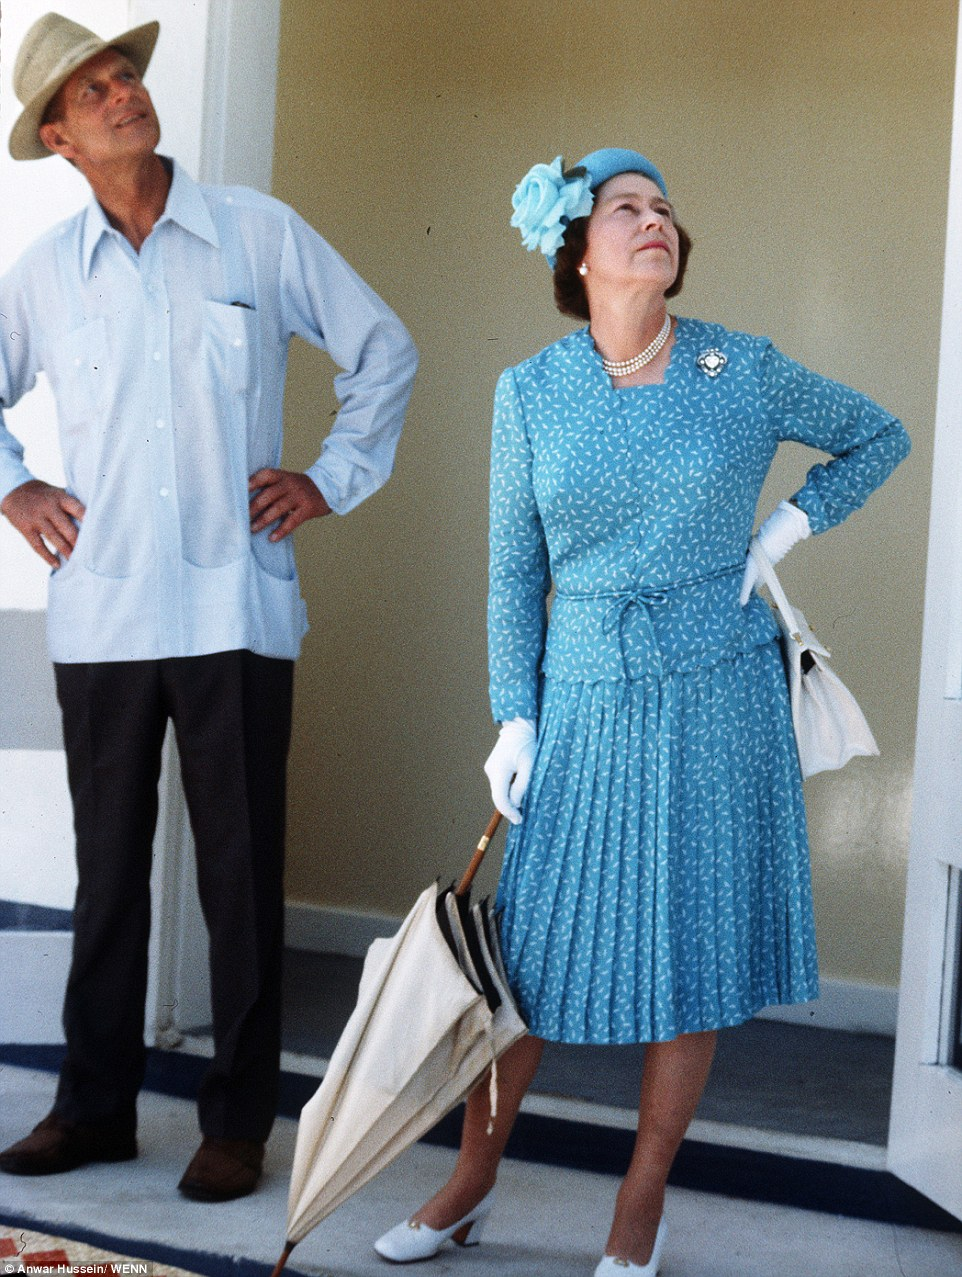 1982: The Queen and the Duke of Edinburgh look relaxed and and dressed casually while on a visit to the Solomon Islands in 1982